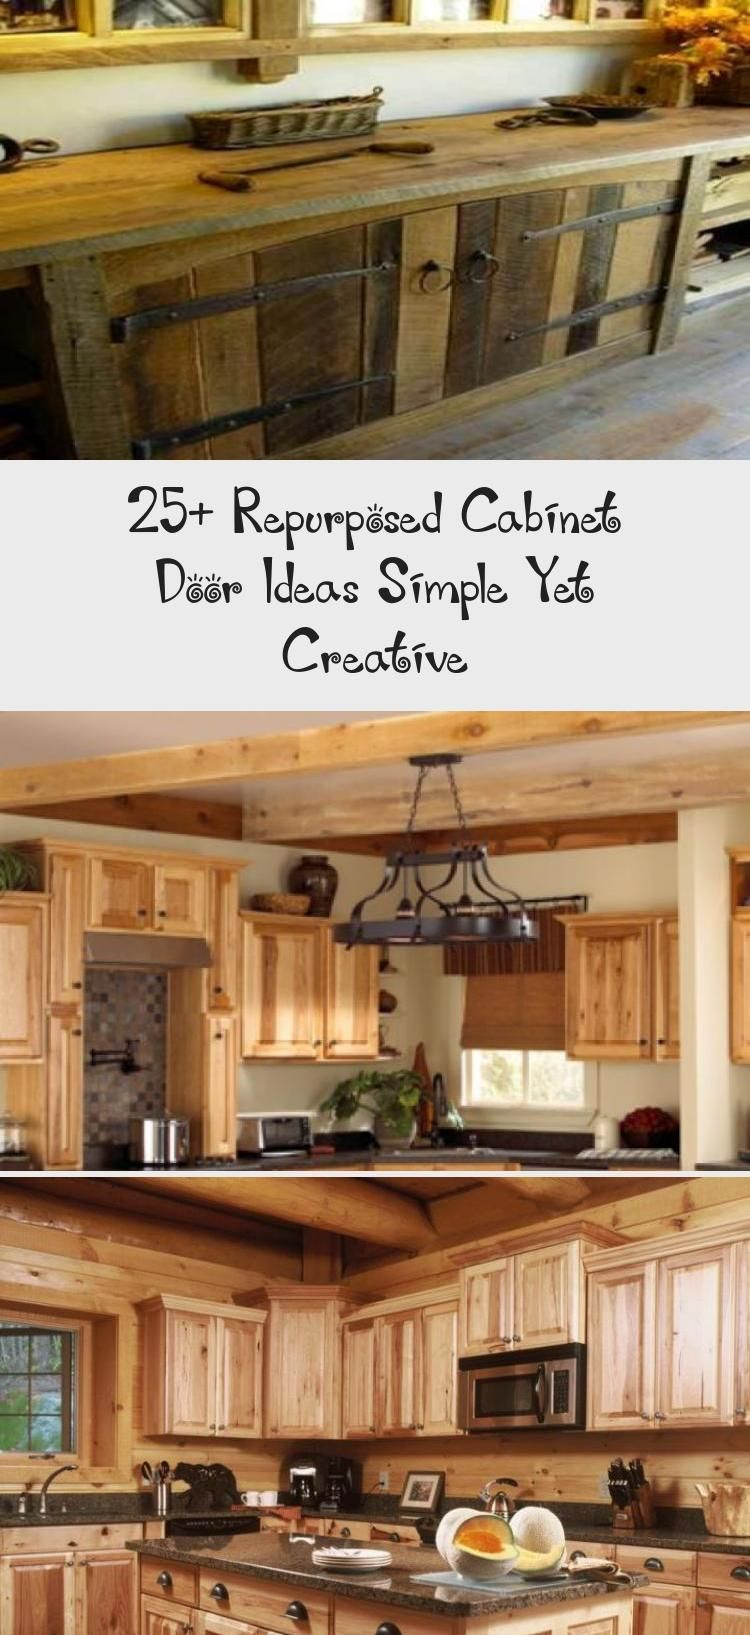 Good Photos Kitchen Cabinet Doors Repurposed Thoughts Dreaming Of Any Your Kitchen Enhance In 2020 Kitchen Cabinet Doors Minimalist Kitchen Cabinets Kitchen Cabinets